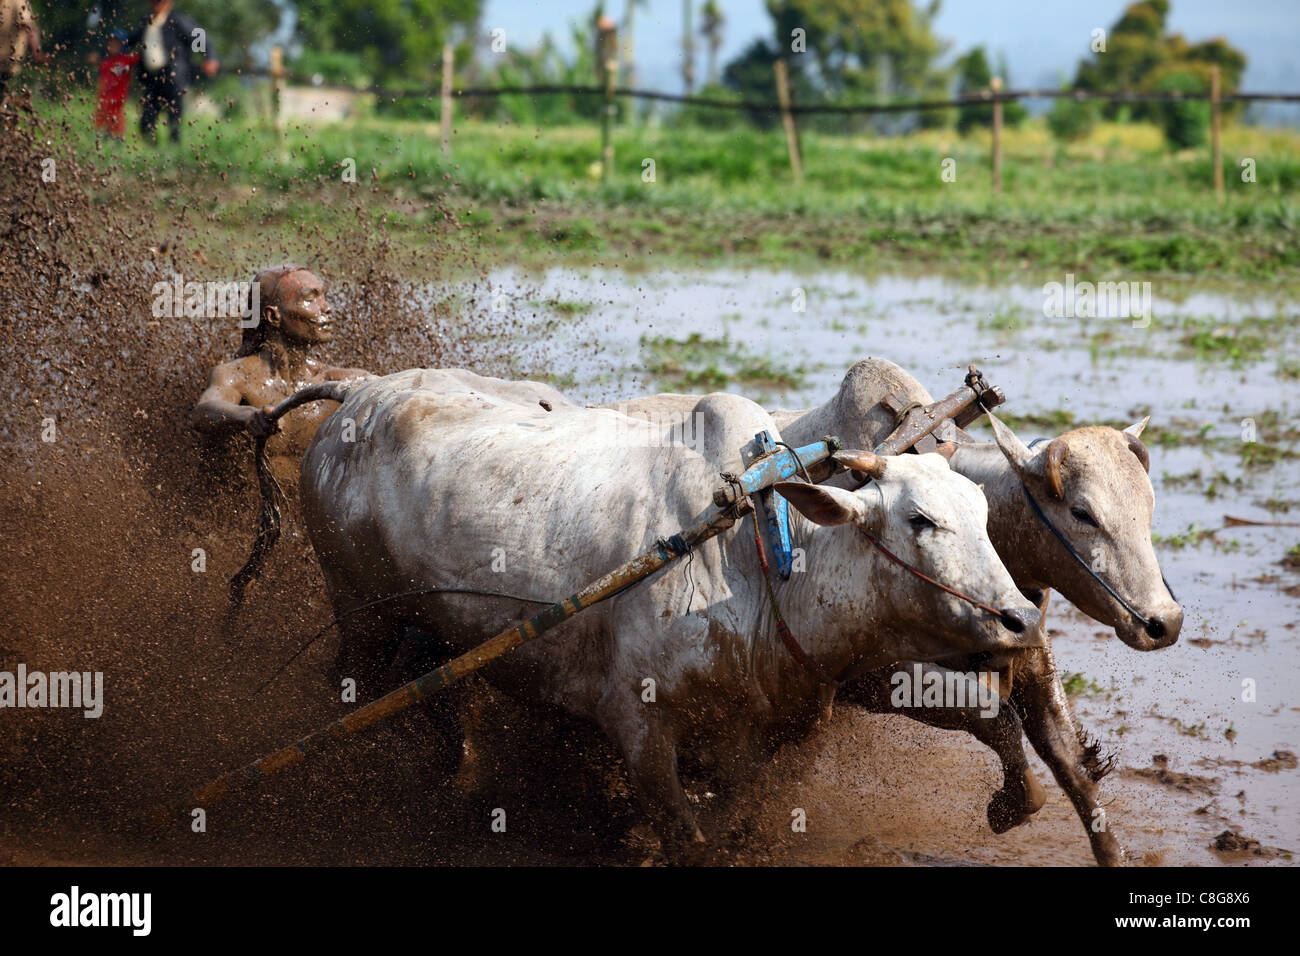 Traditional Bull Racing in Indonesia 60